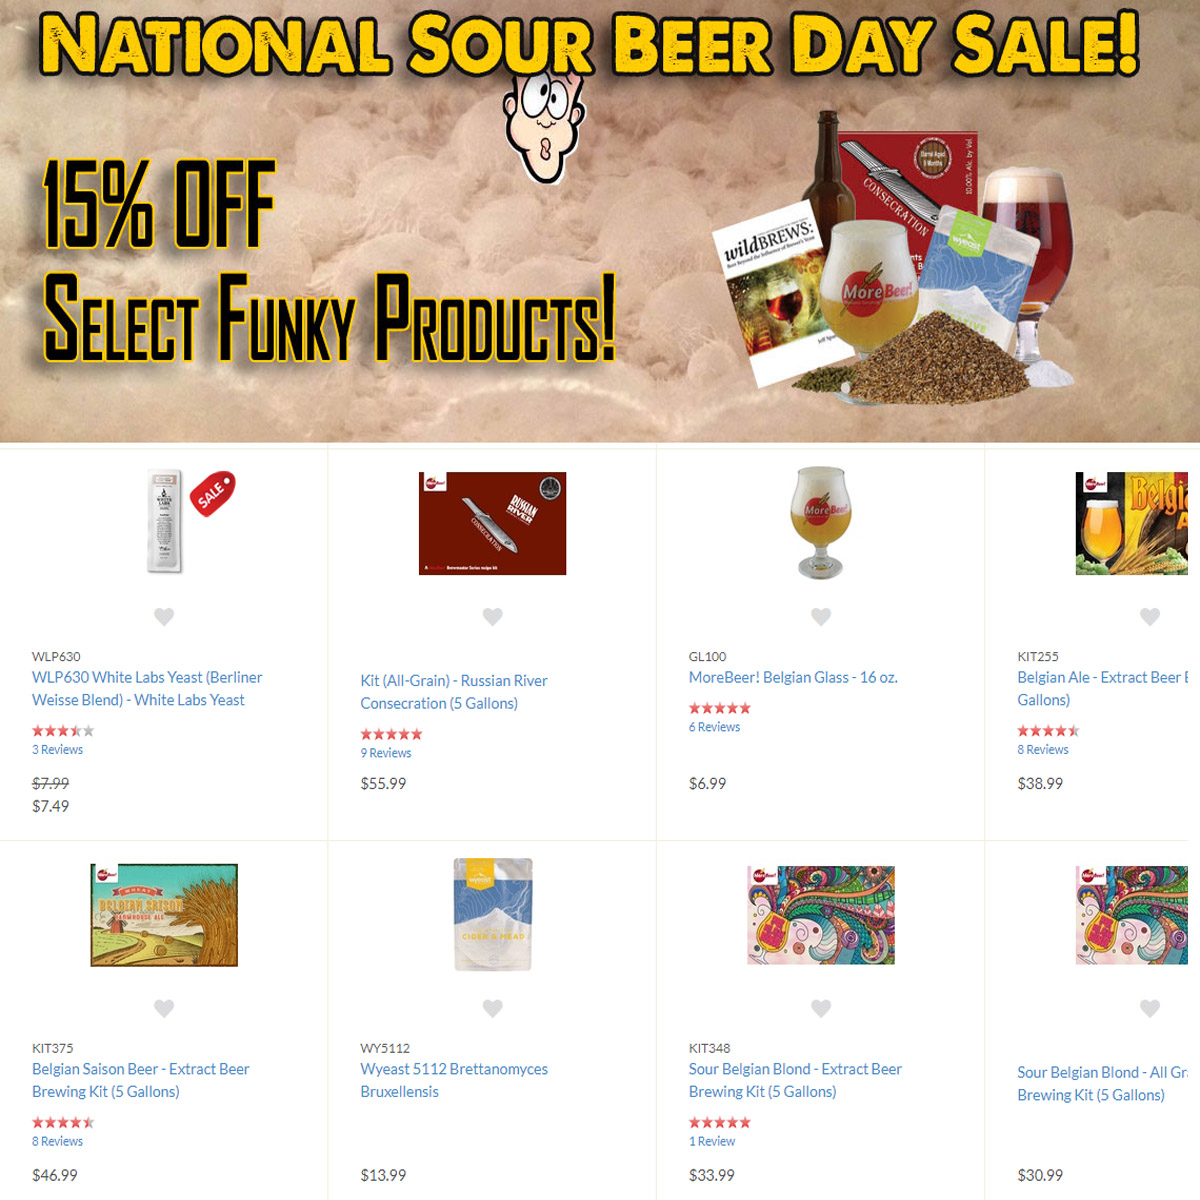 Home Wine Making Coupon Codes for Use this MoreBeer.com promo code for 15% off select MoreBeer products Coupon Code